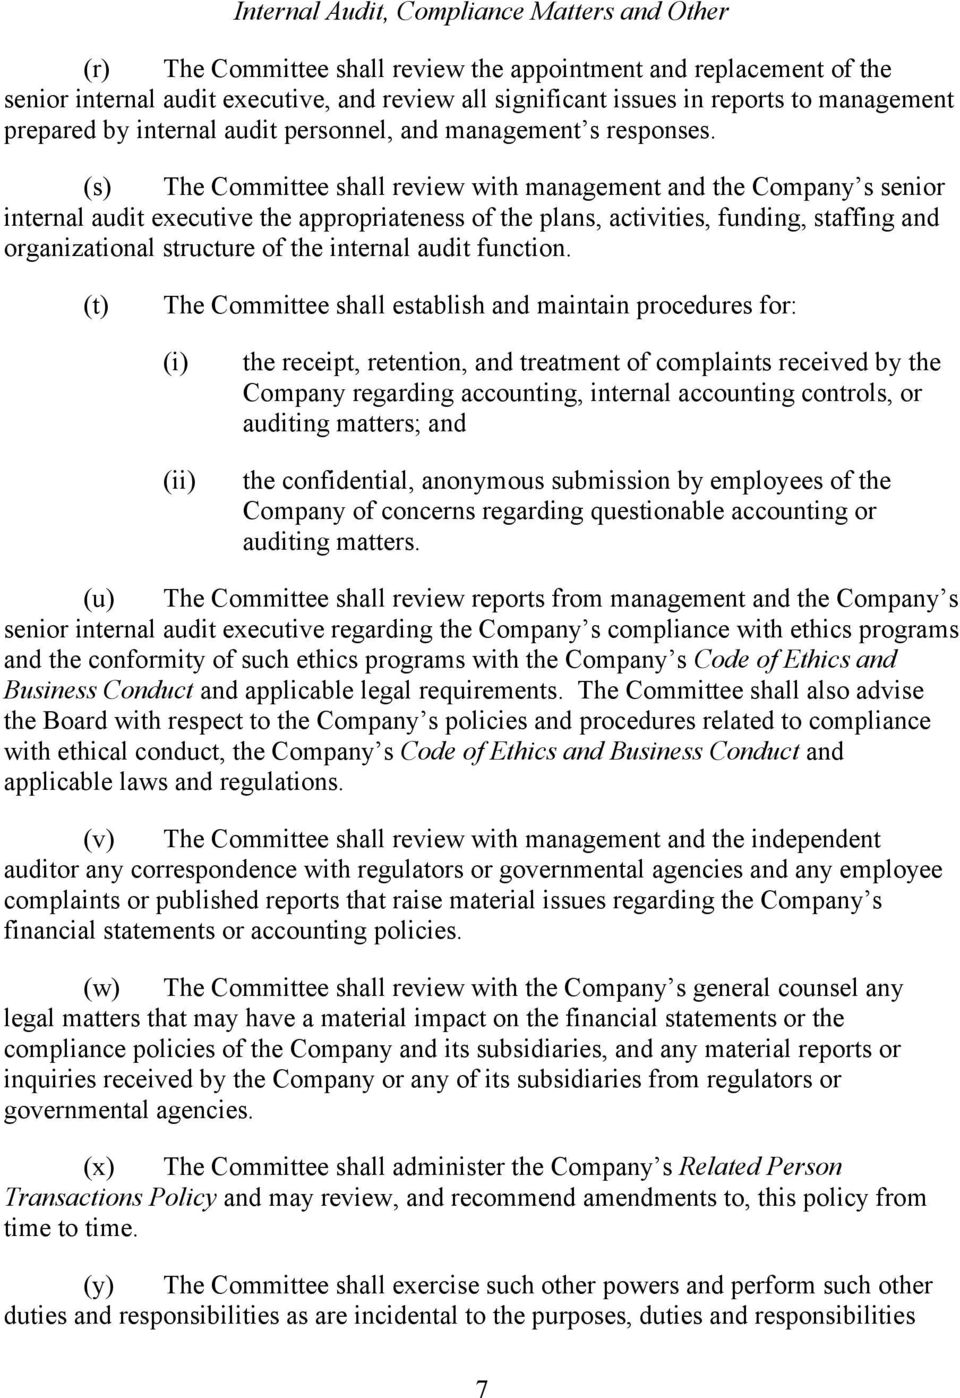 (s) The Committee shall review with management and the Company s senior internal audit executive the appropriateness of the plans, activities, funding, staffing and organizational structure of the